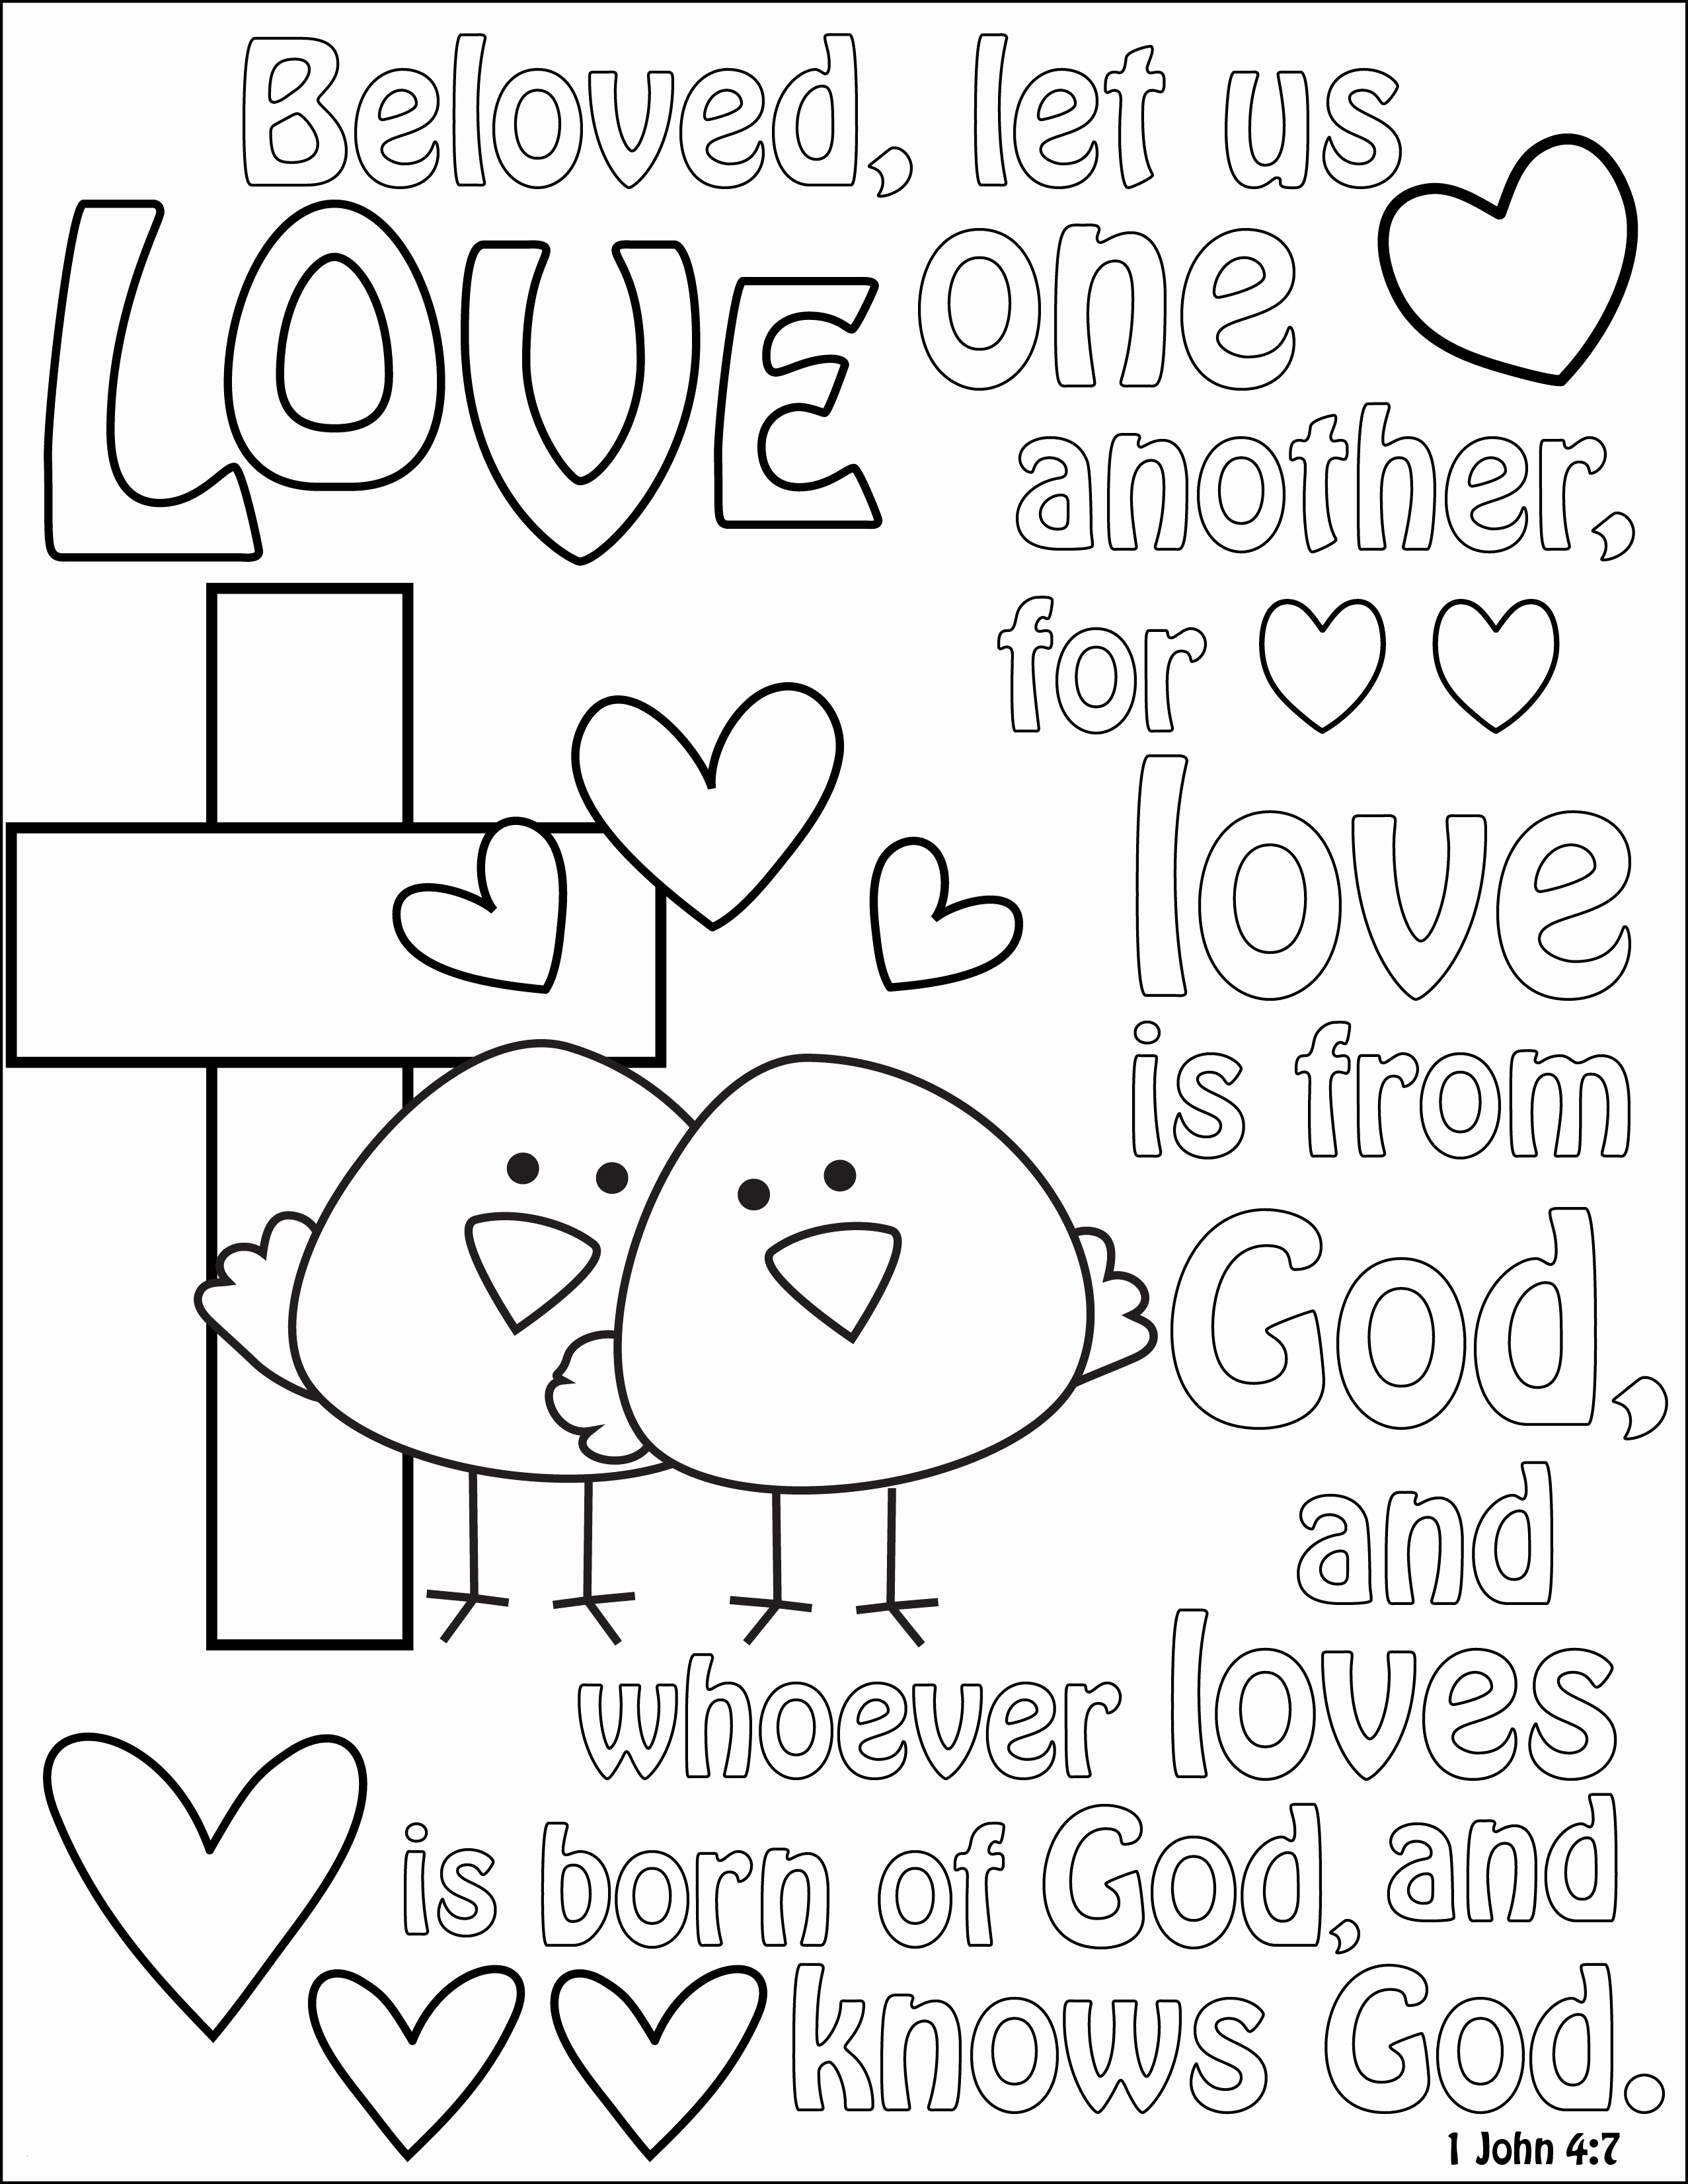 god is love coloring pages Download-God is Love Coloring Pages Fresh Nice God is Love Coloring Pages Letramac 9-r